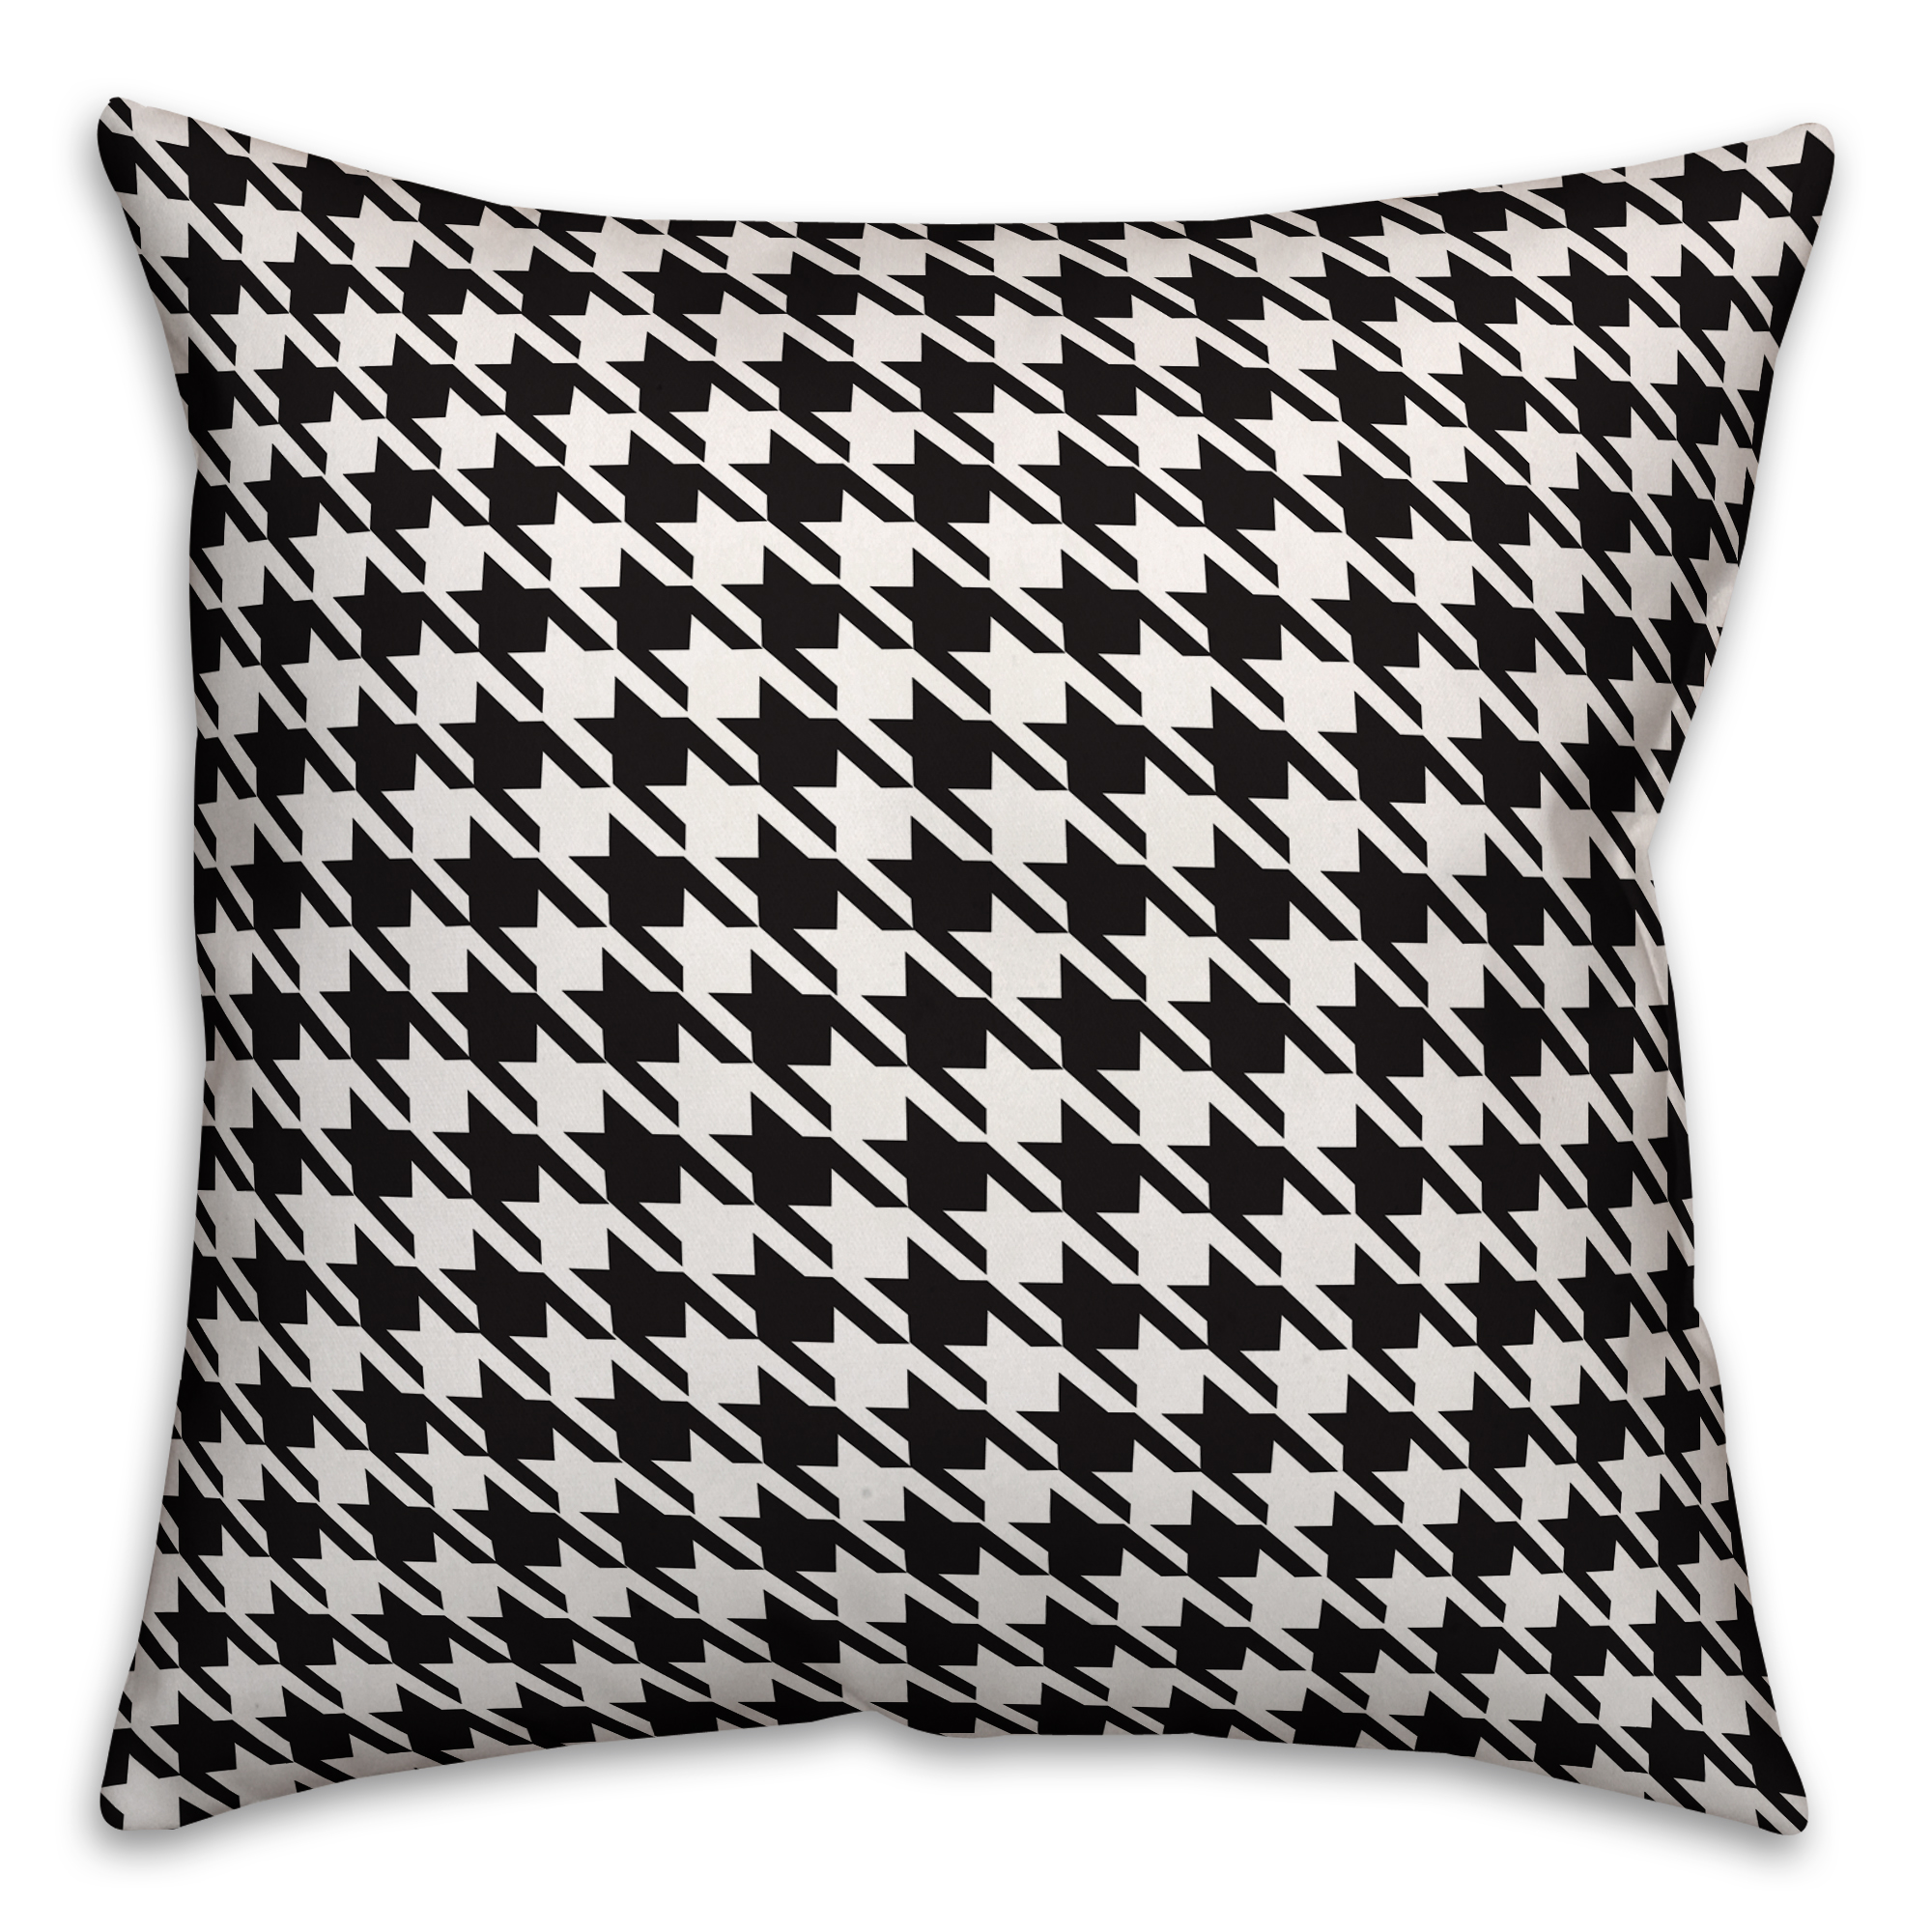 Black and White Houndstooth Plaid 20x20 Spun Poly Pillow Cover